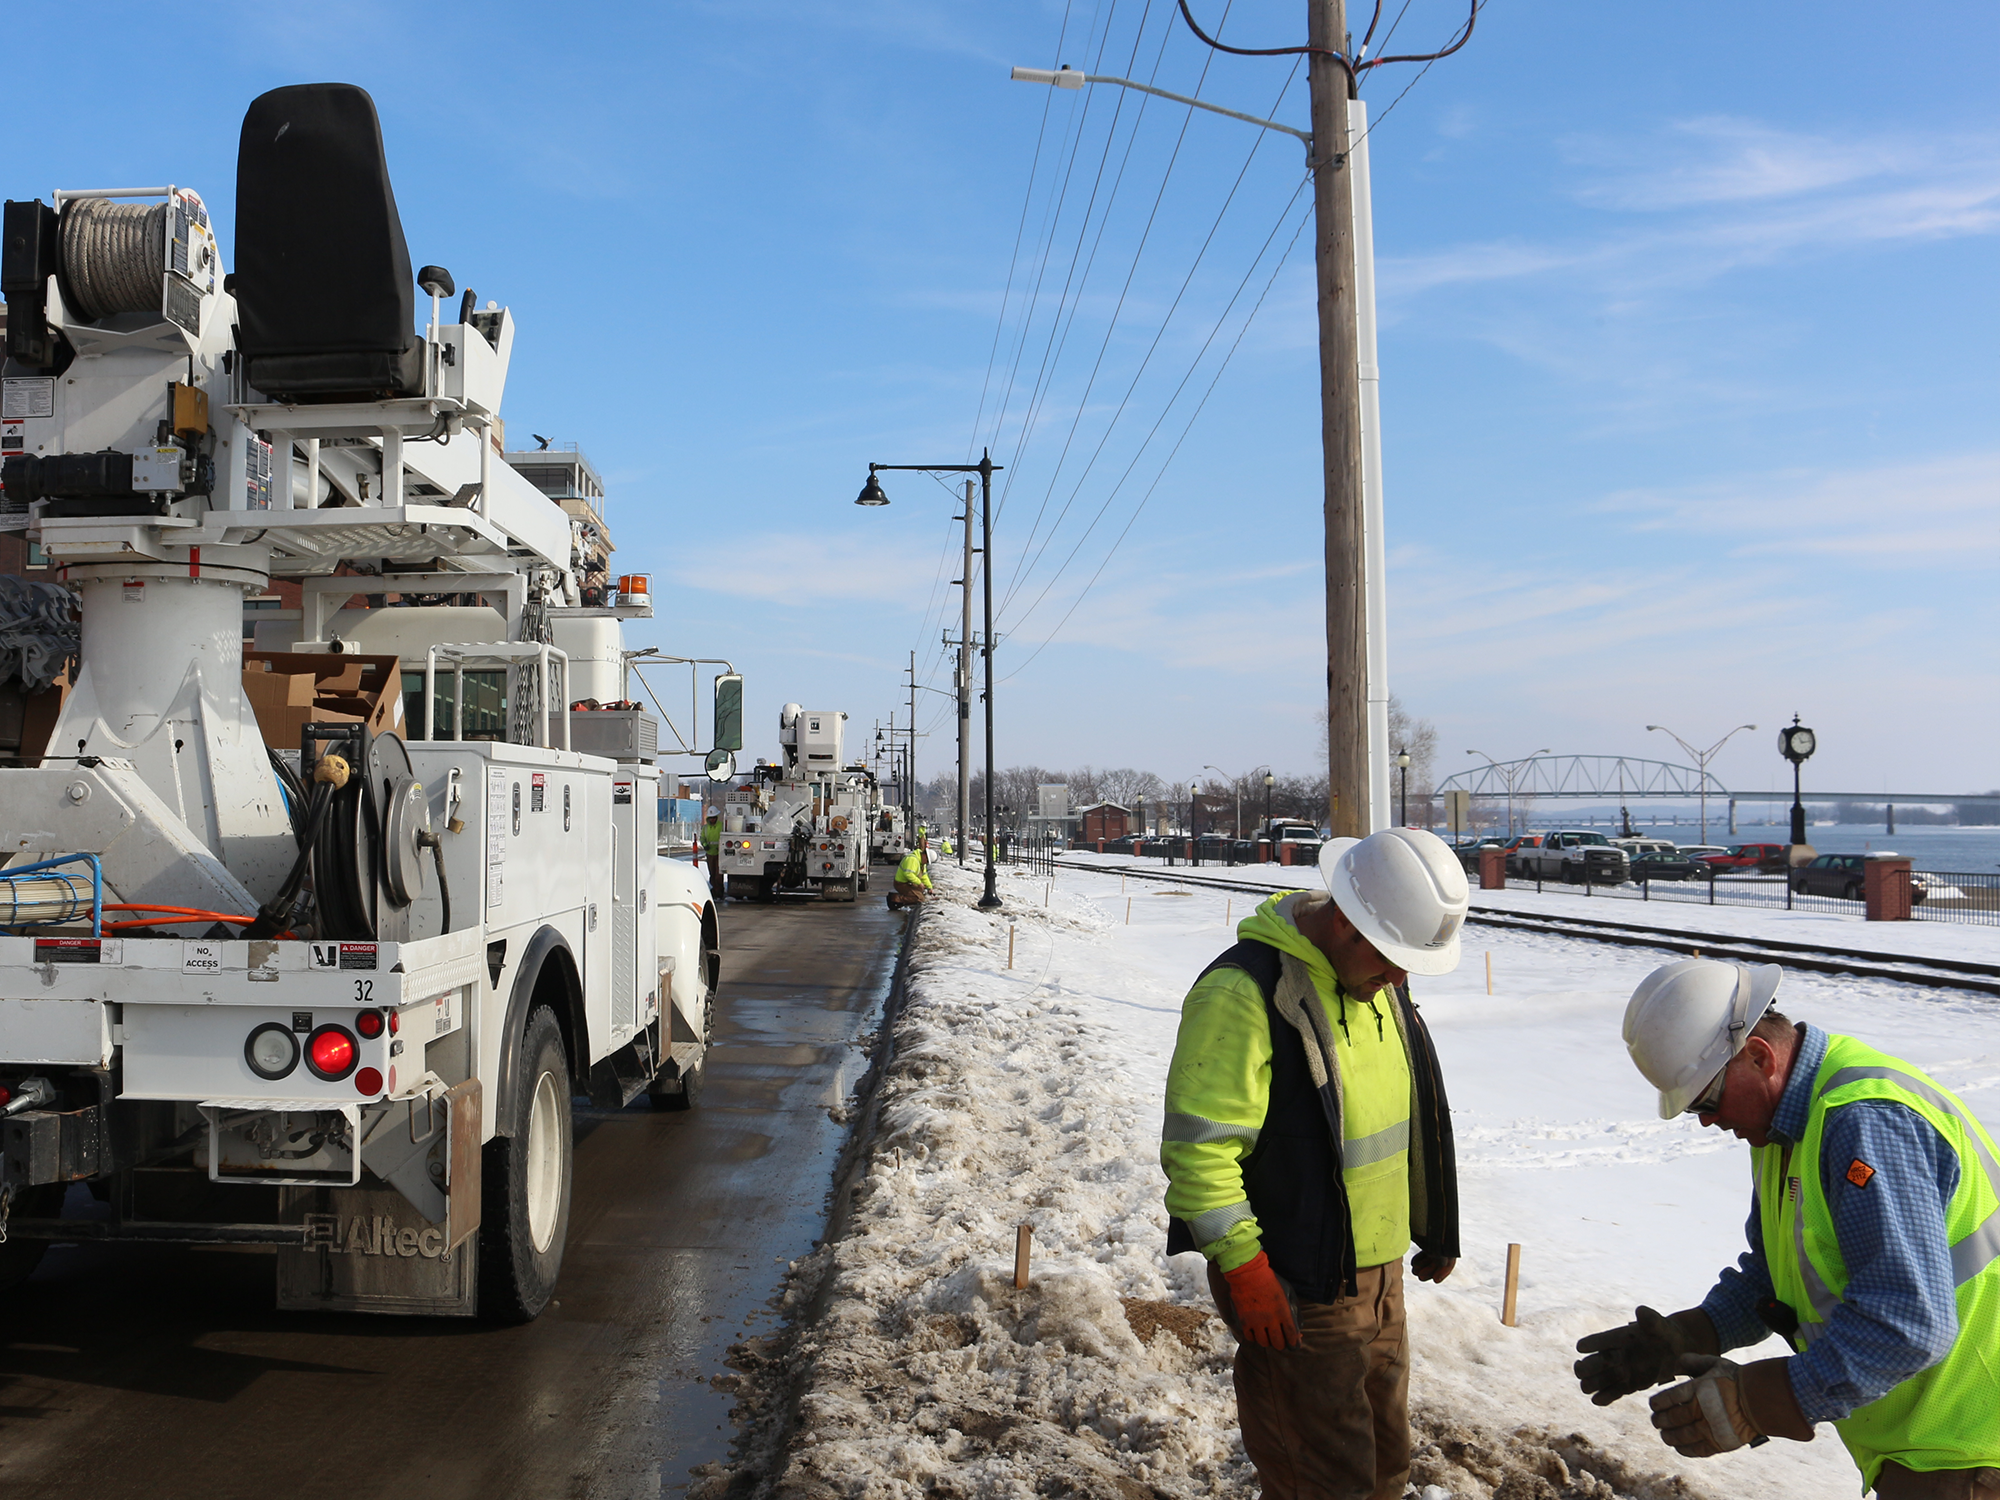 men working in snow on ground near electric pole